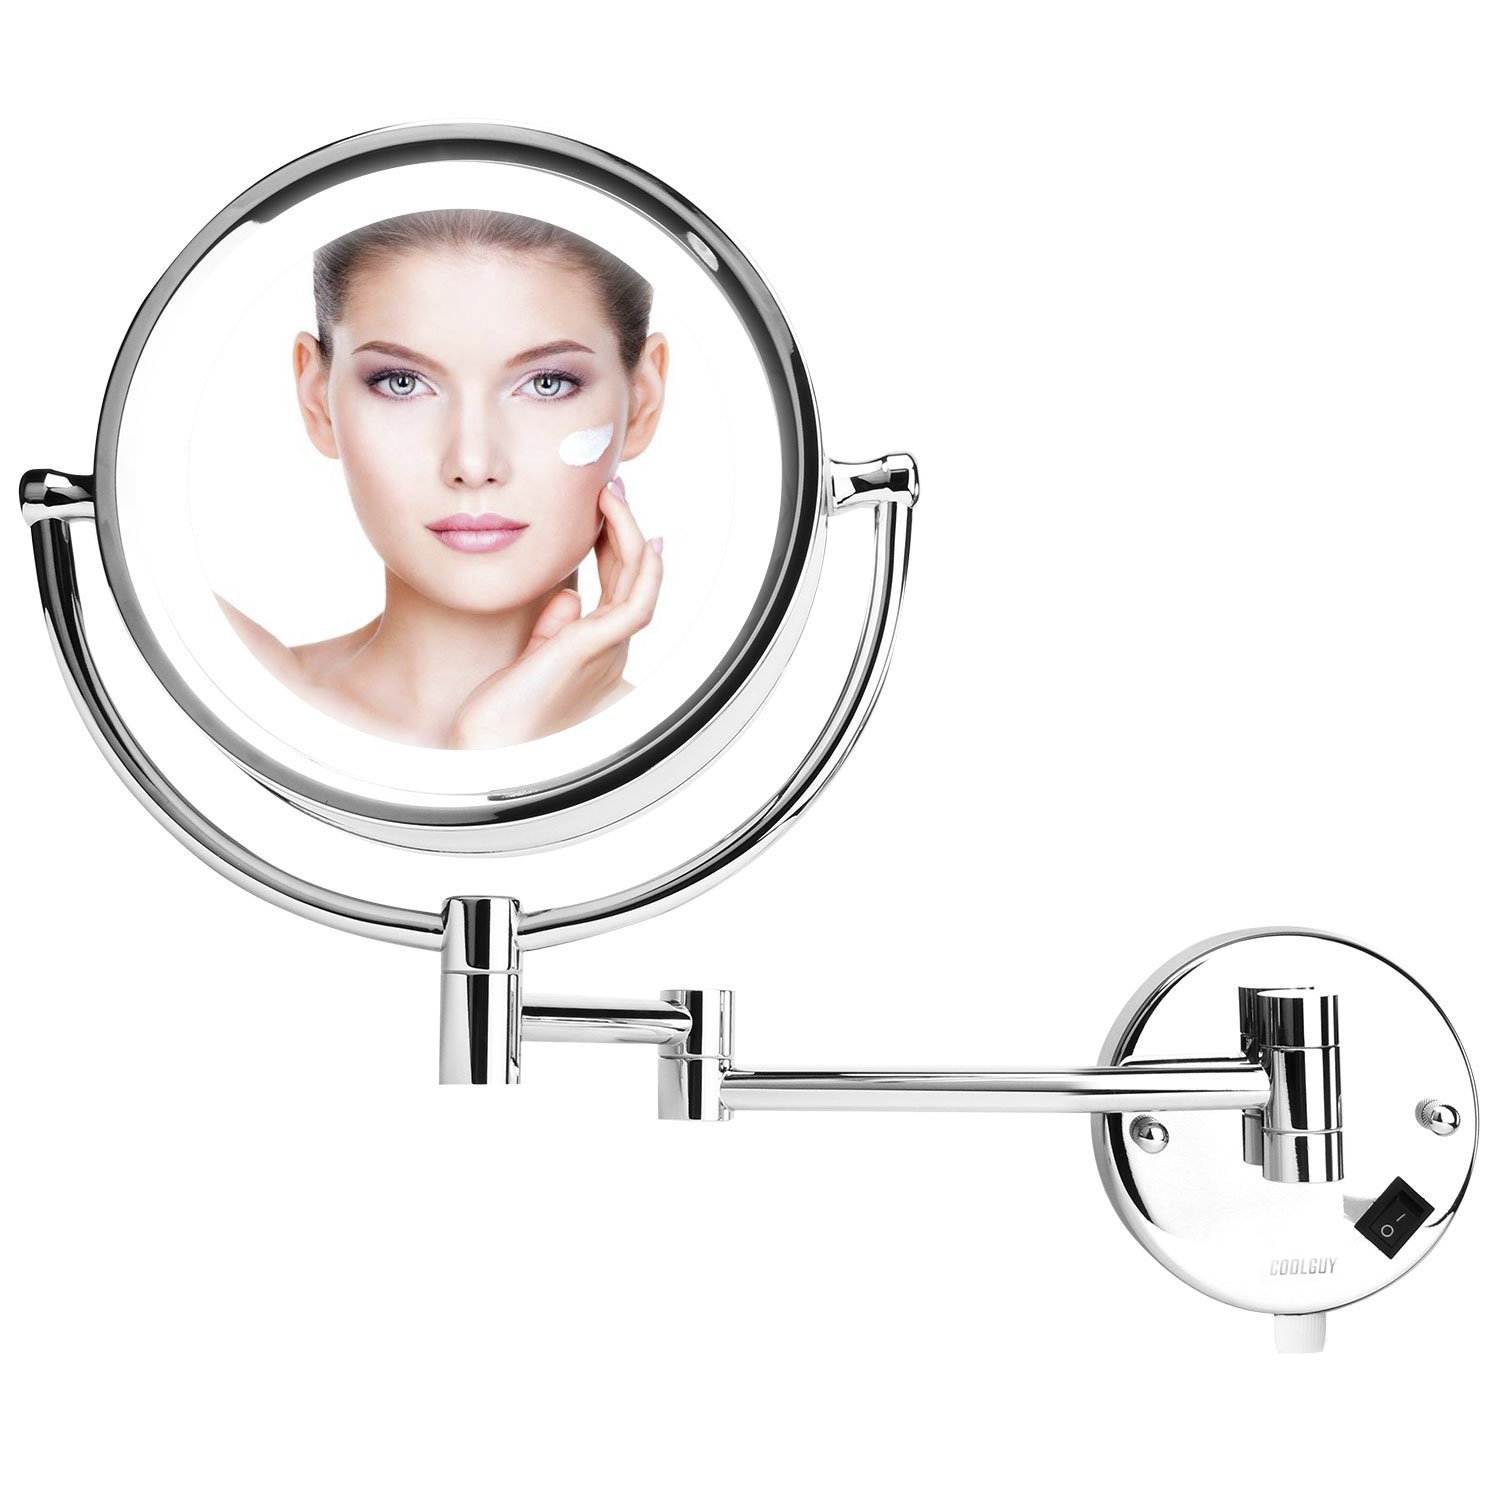 Lighted Makeup Mirror, Wall Mount Mirror , Wall Vanity Mirror with 8.5- Inch, 1x/10x Magnification for Makeup, Shaving in Bedroom or Bathroom, Chrome by COOLGUY by COOLGUY